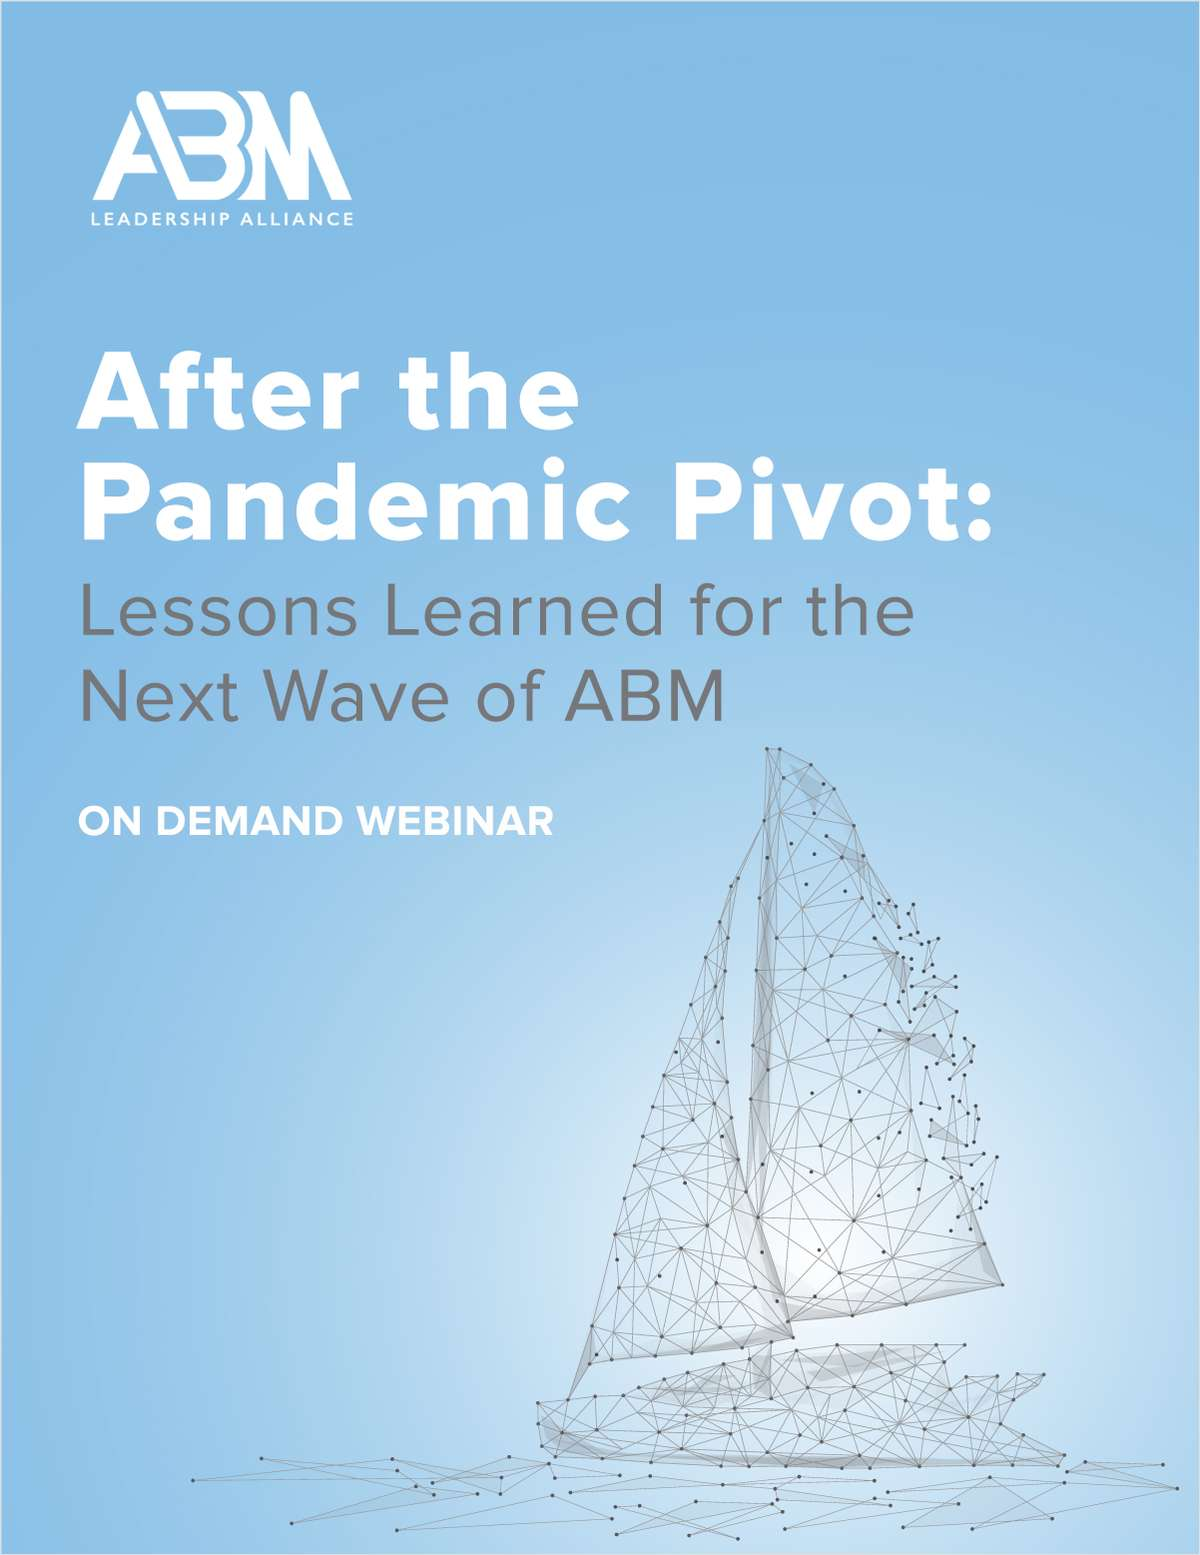 After the Pandemic Pivot: Lessons Learned for the Next Wave of ABM